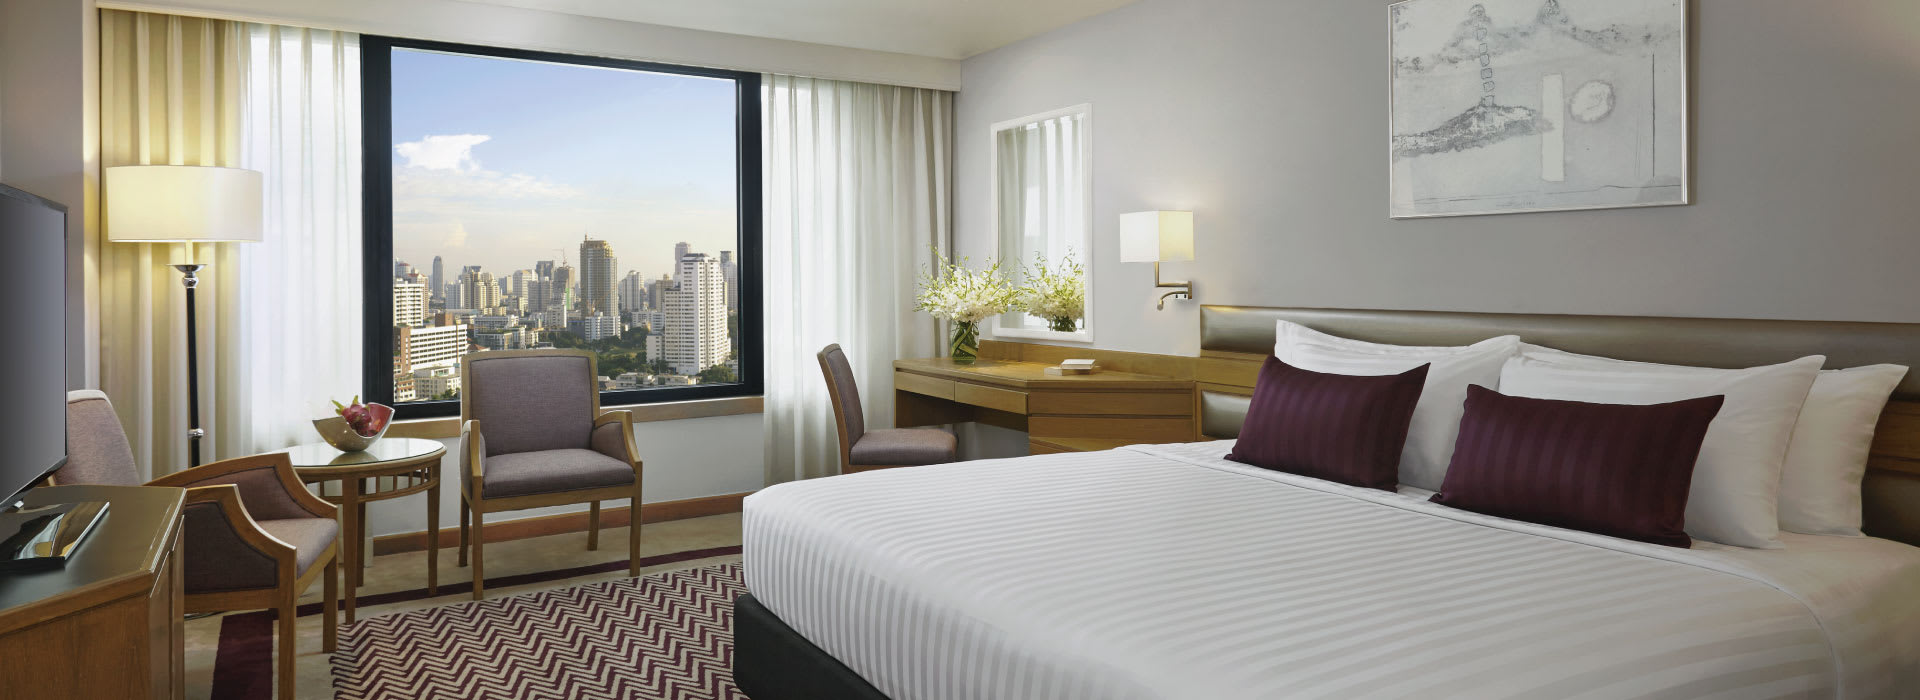 Amazing Hotel Deals Bangkok for accommodation